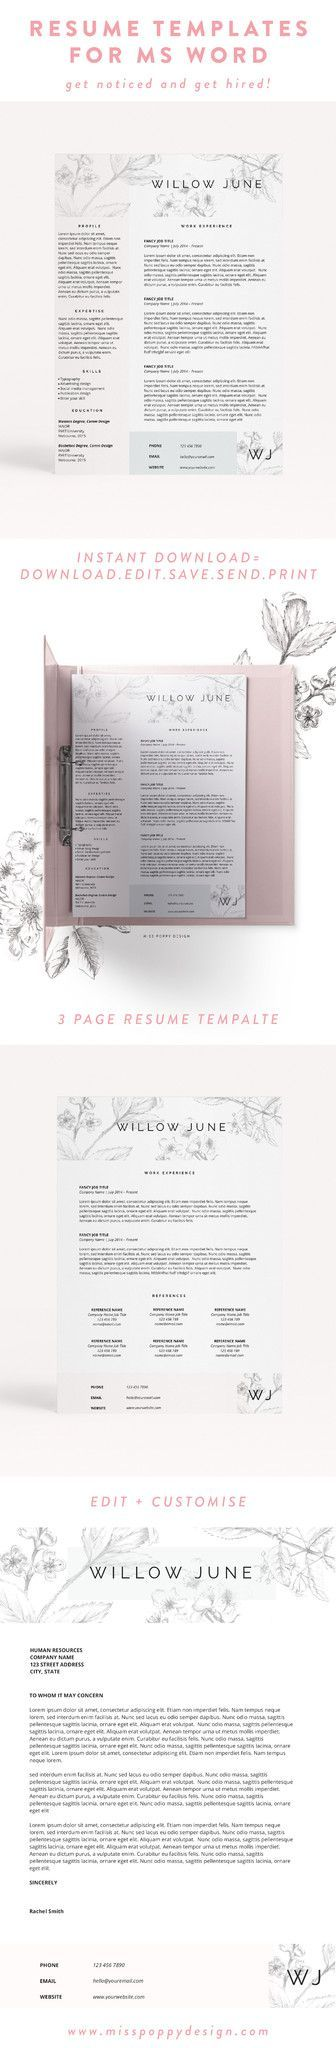 Best 25+ Resume maker professional ideas on Pinterest Resume - resume builder no cost